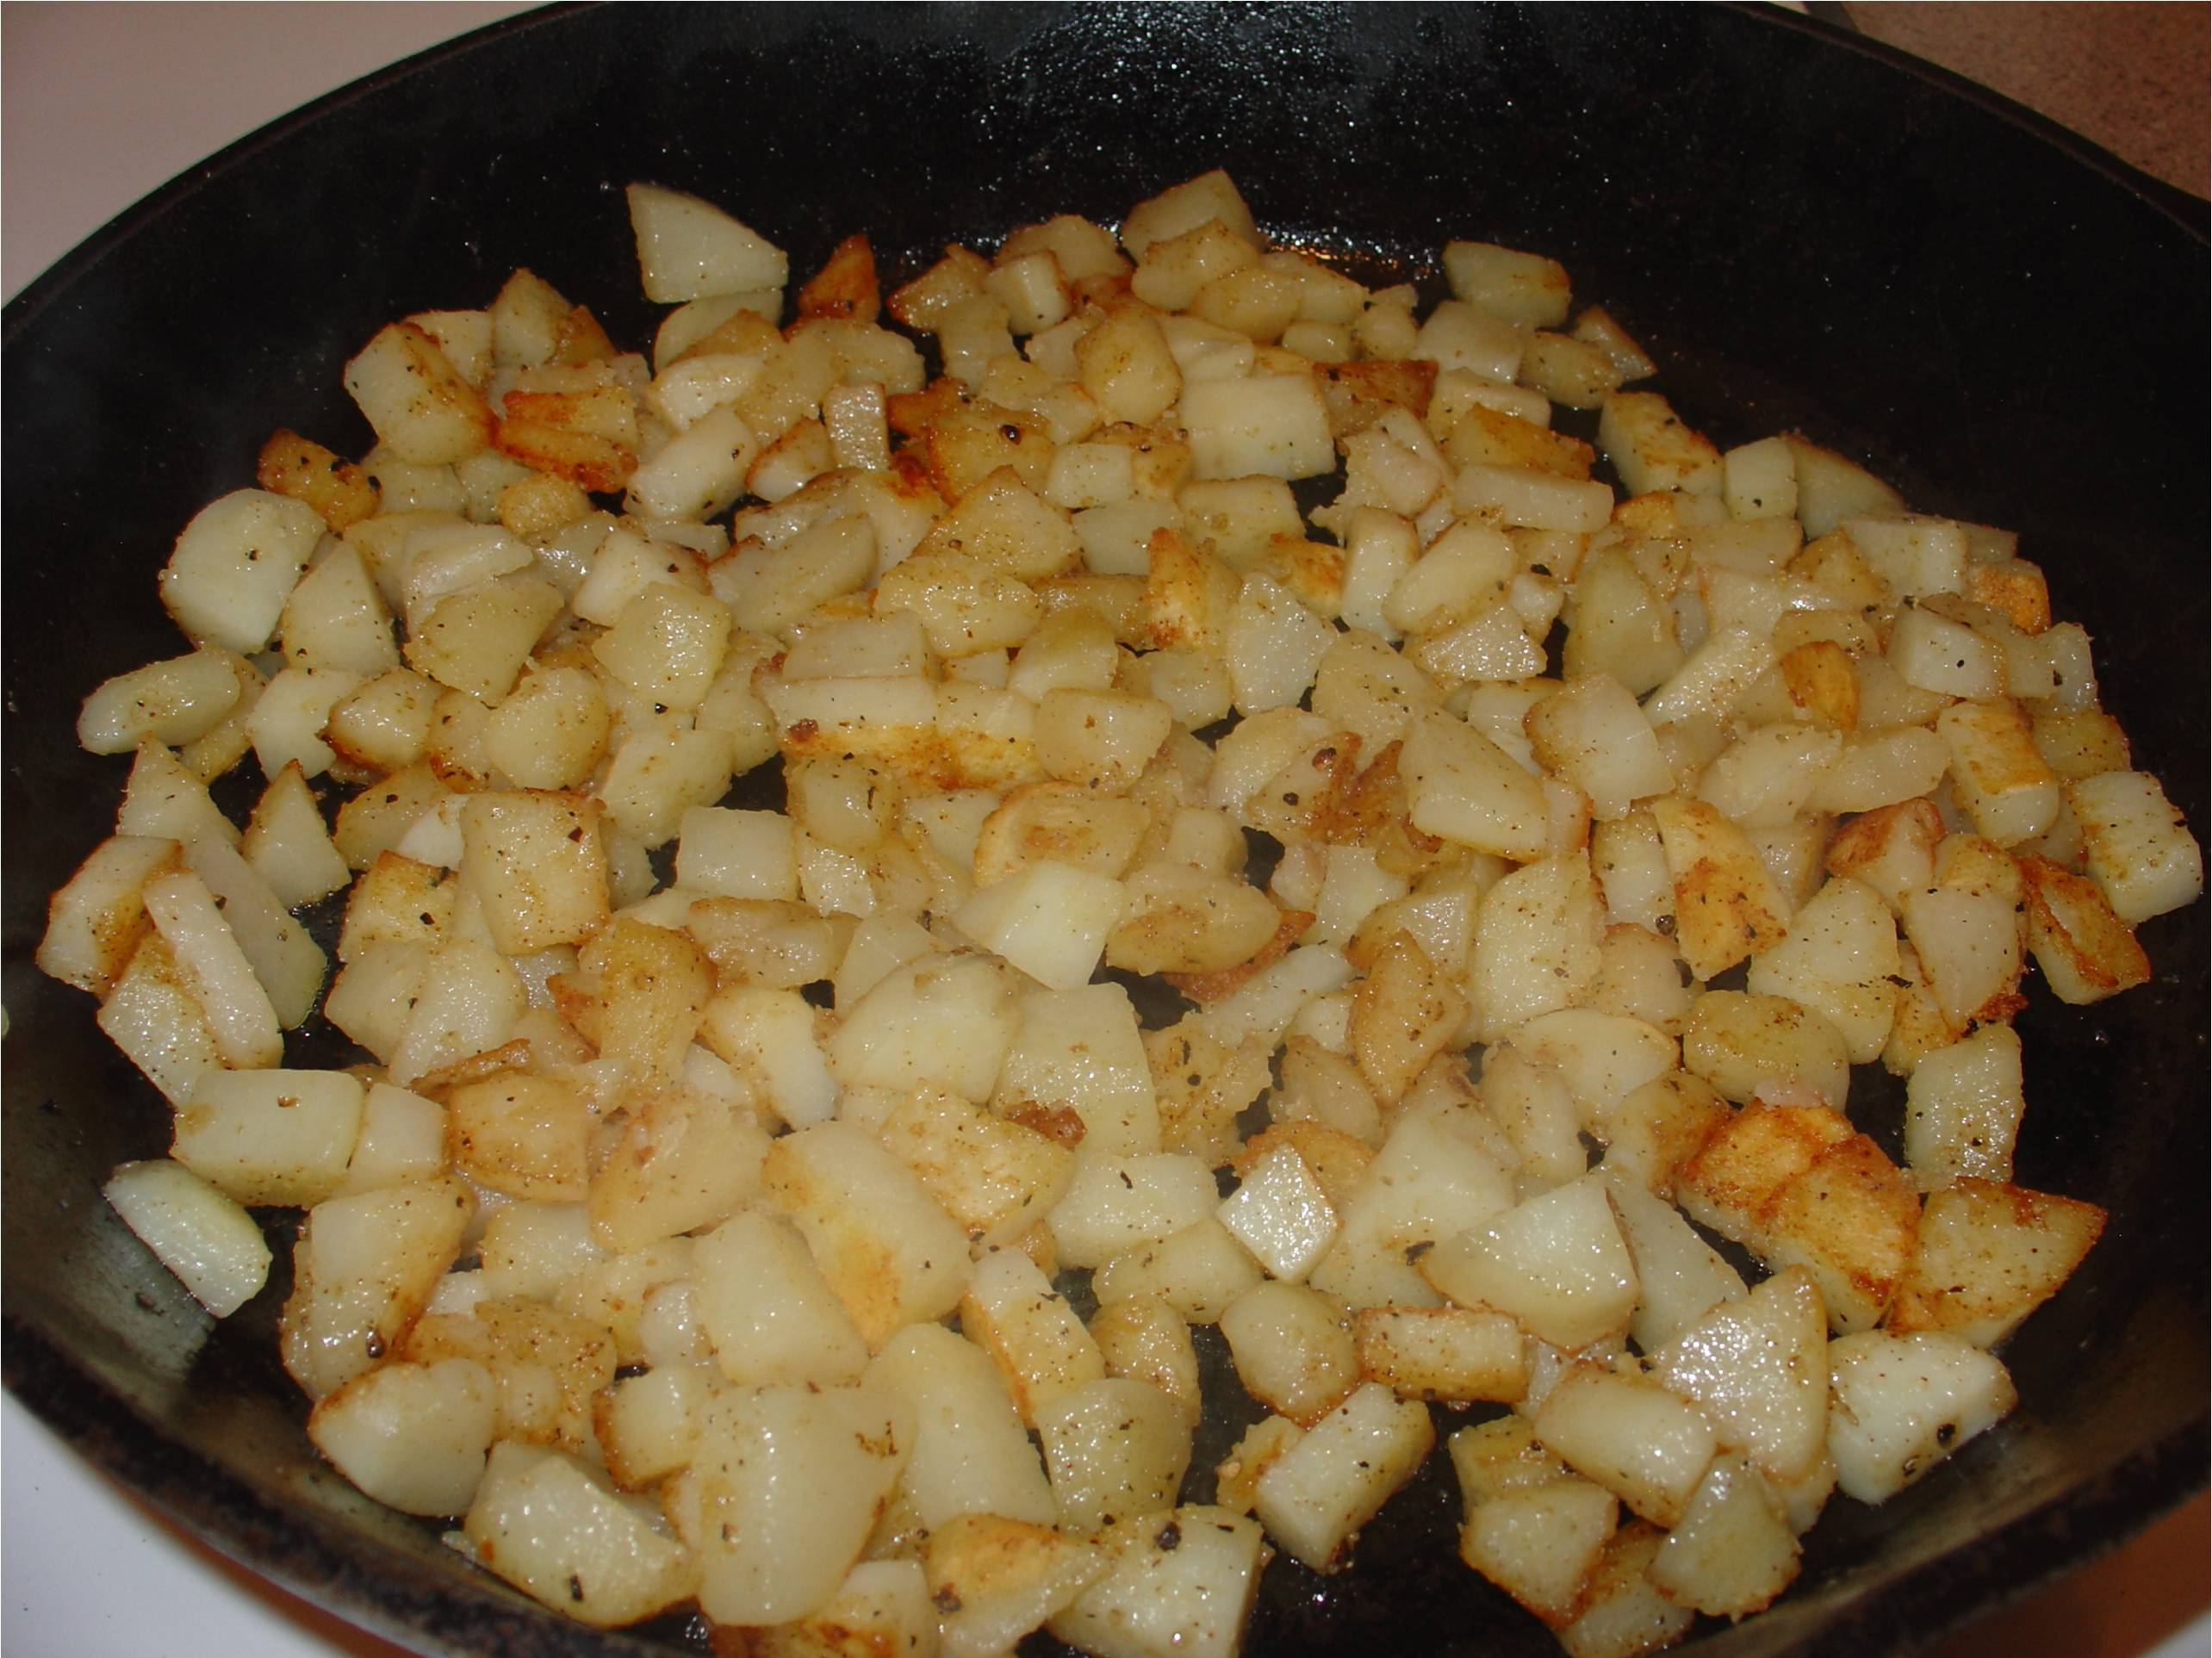 Fried Potatoes or Home Fries